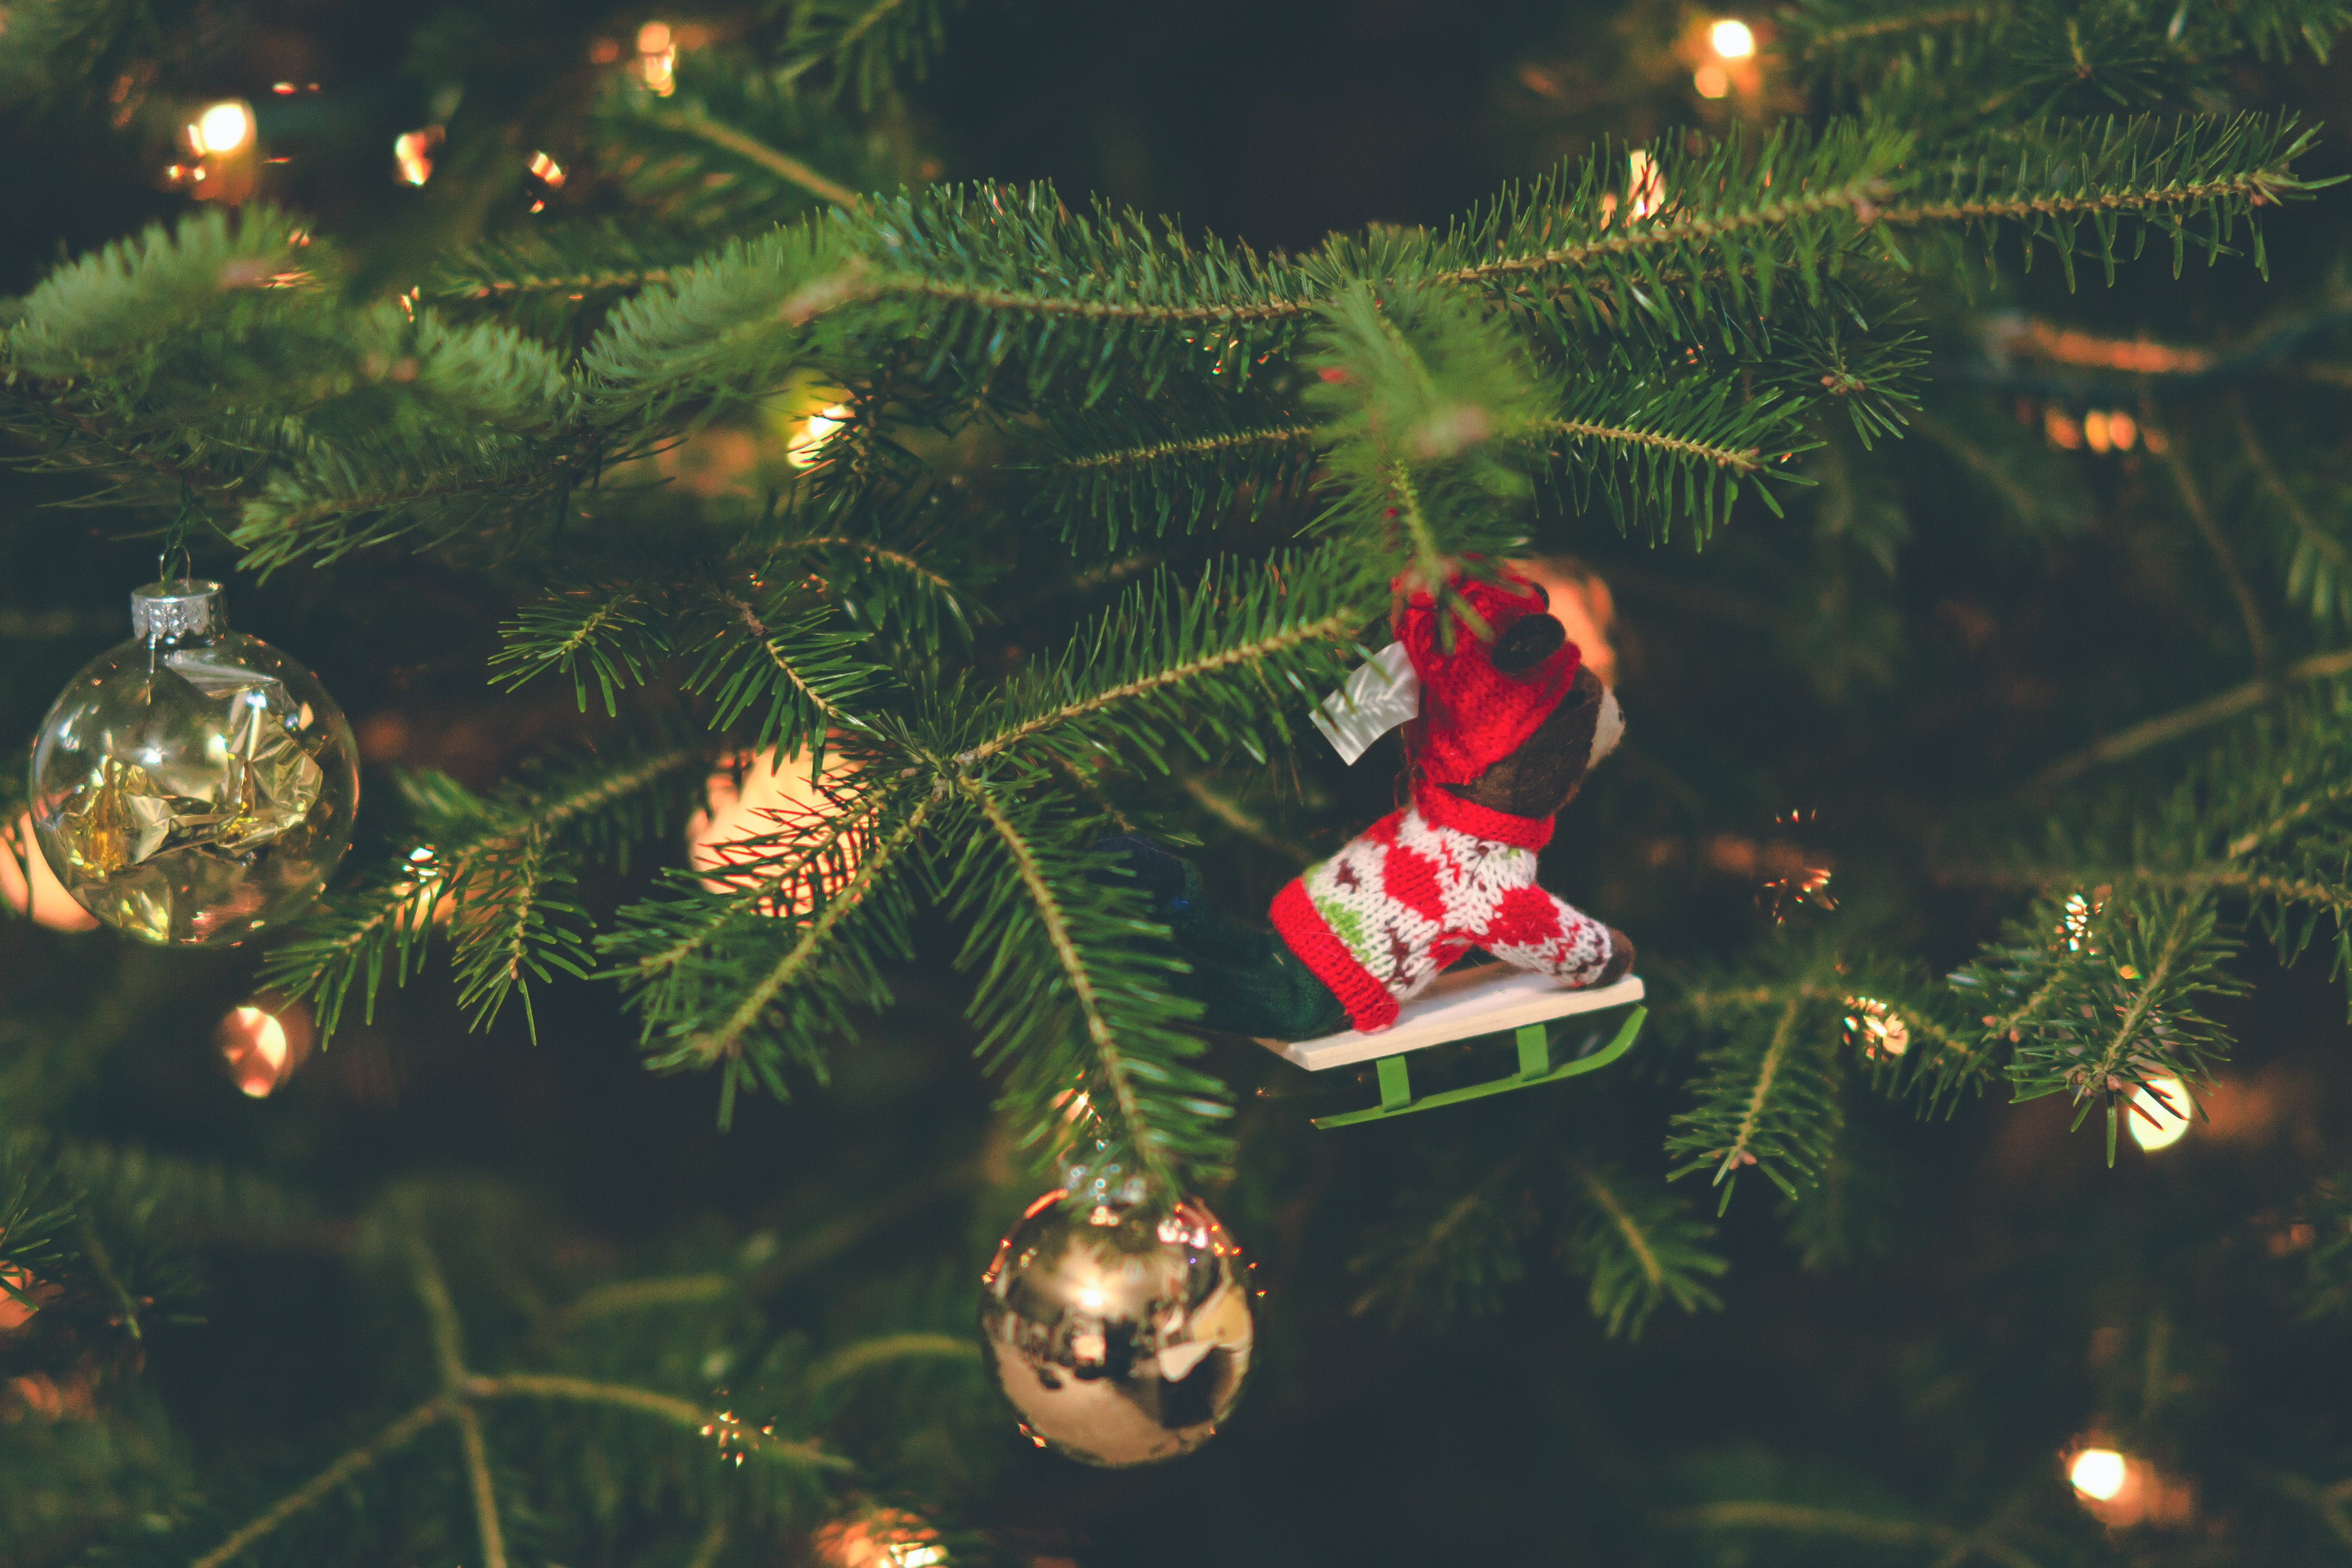 Shallow Focus Photography of Red and White Hanging Christmas Tree Decor